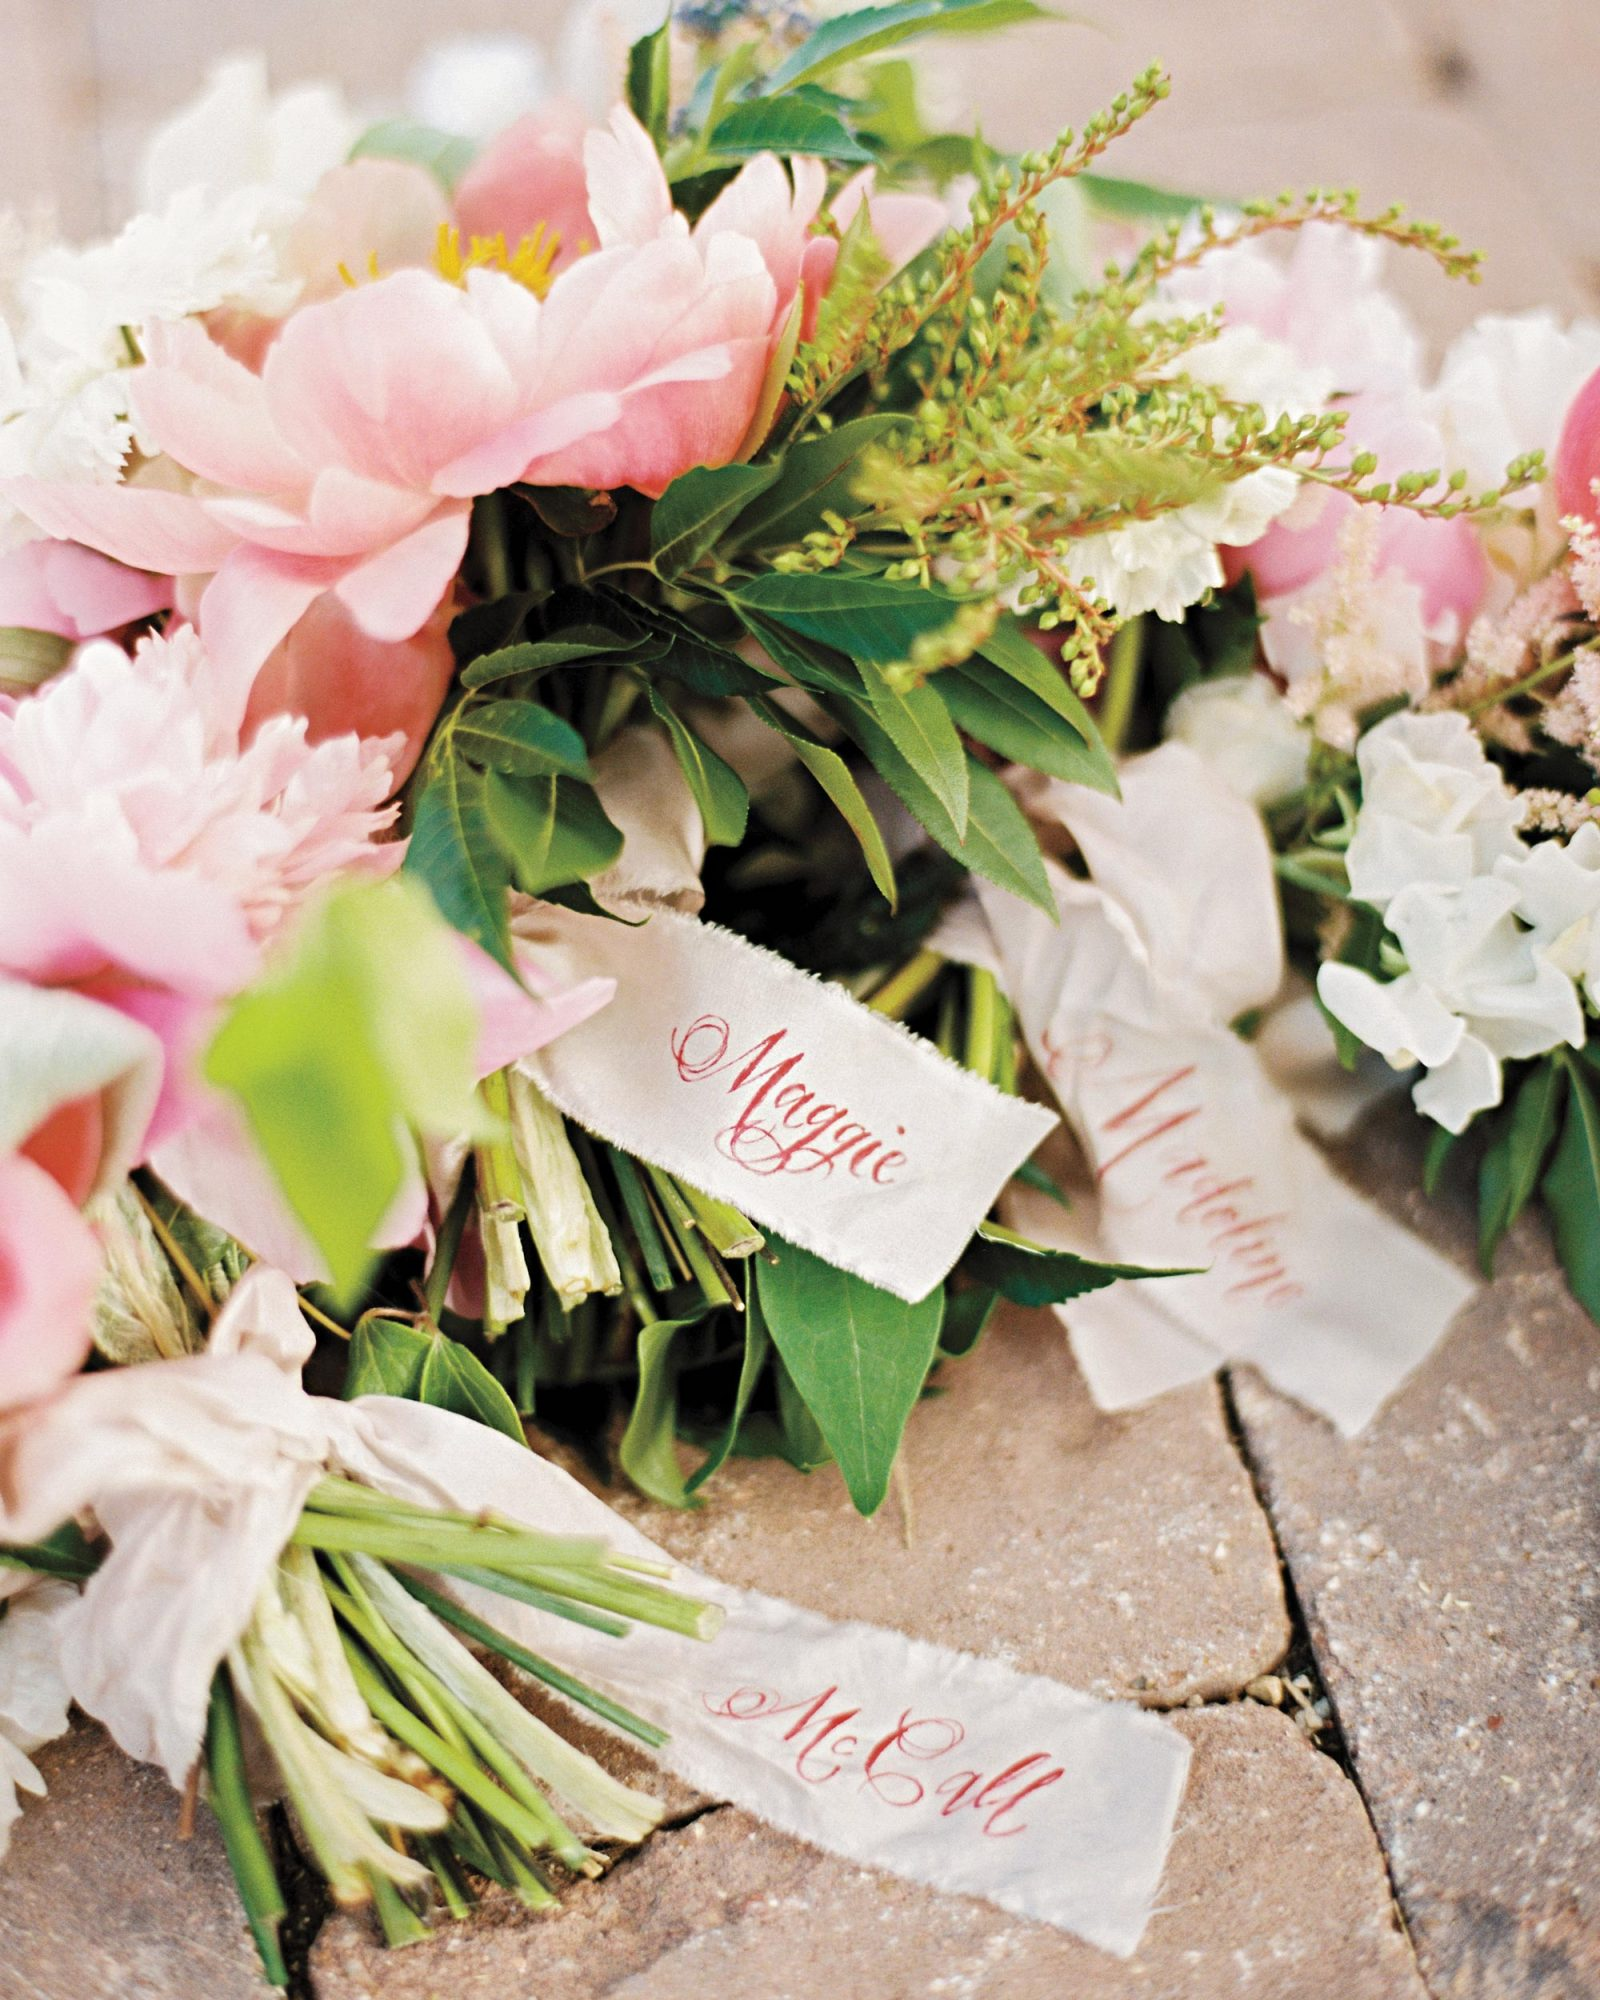 David-Tyler-Real-WedidniDng-MedideSs-Bouquets-with-names.jpg